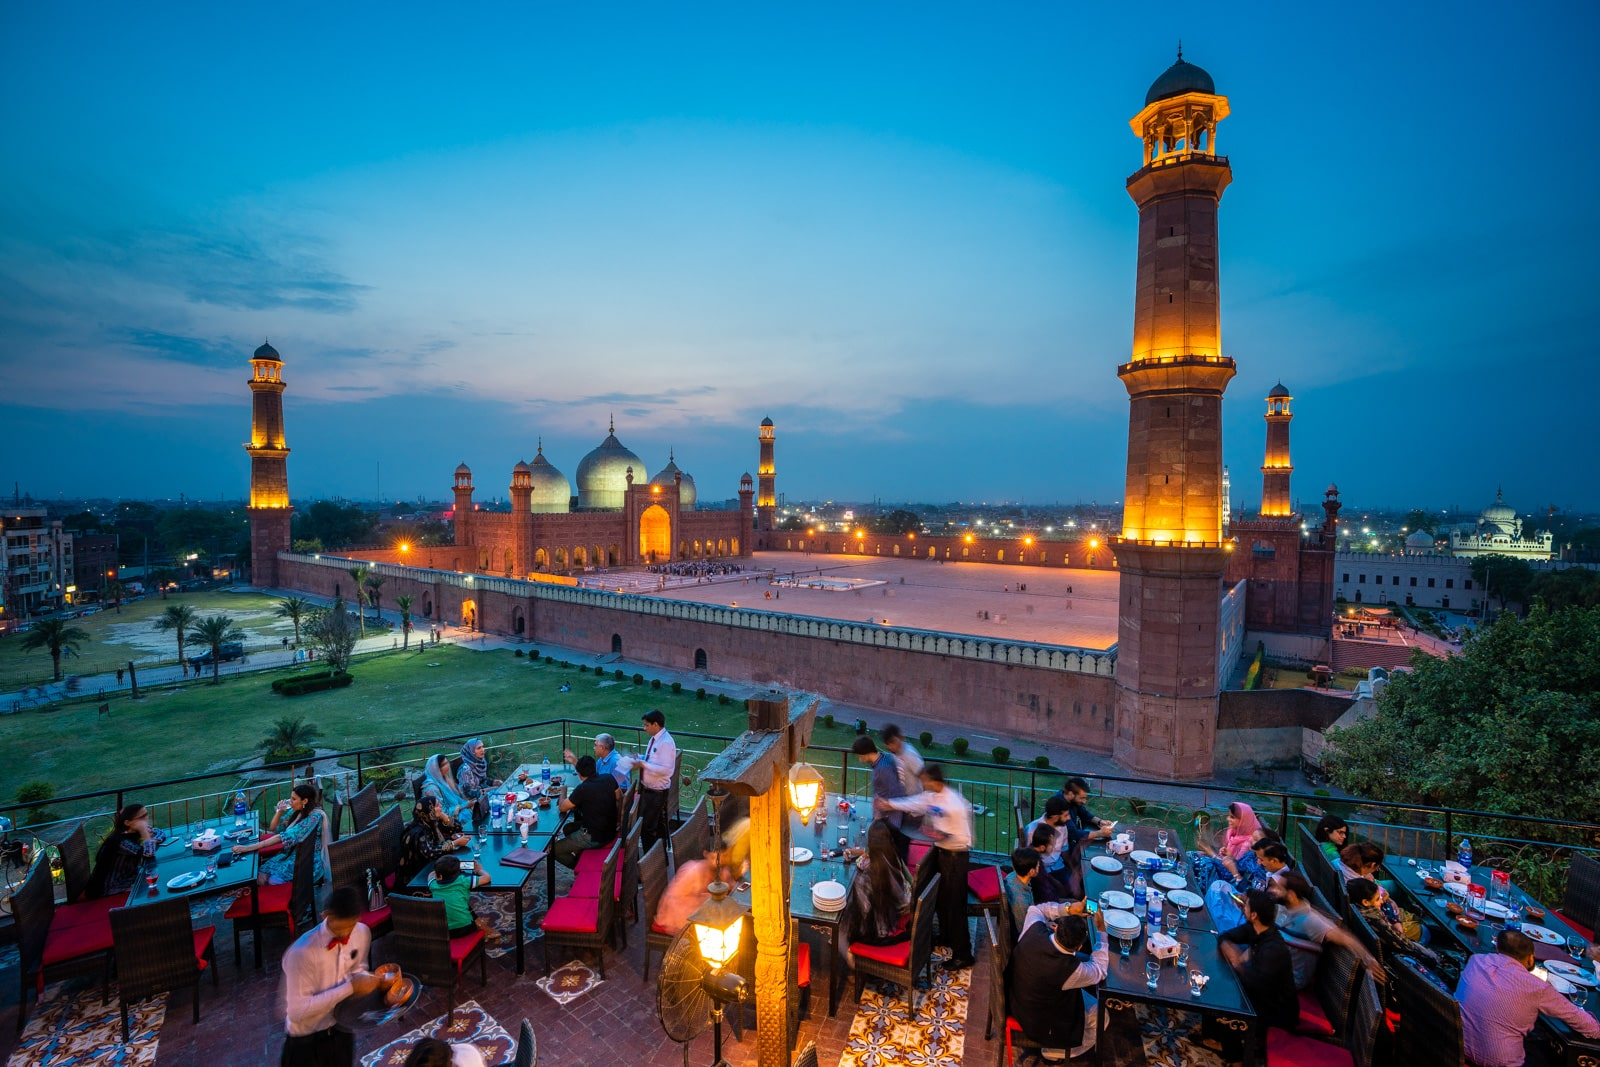 Badshahi Mosque in Lahore, Pakistan at sunset with people eating dinner a